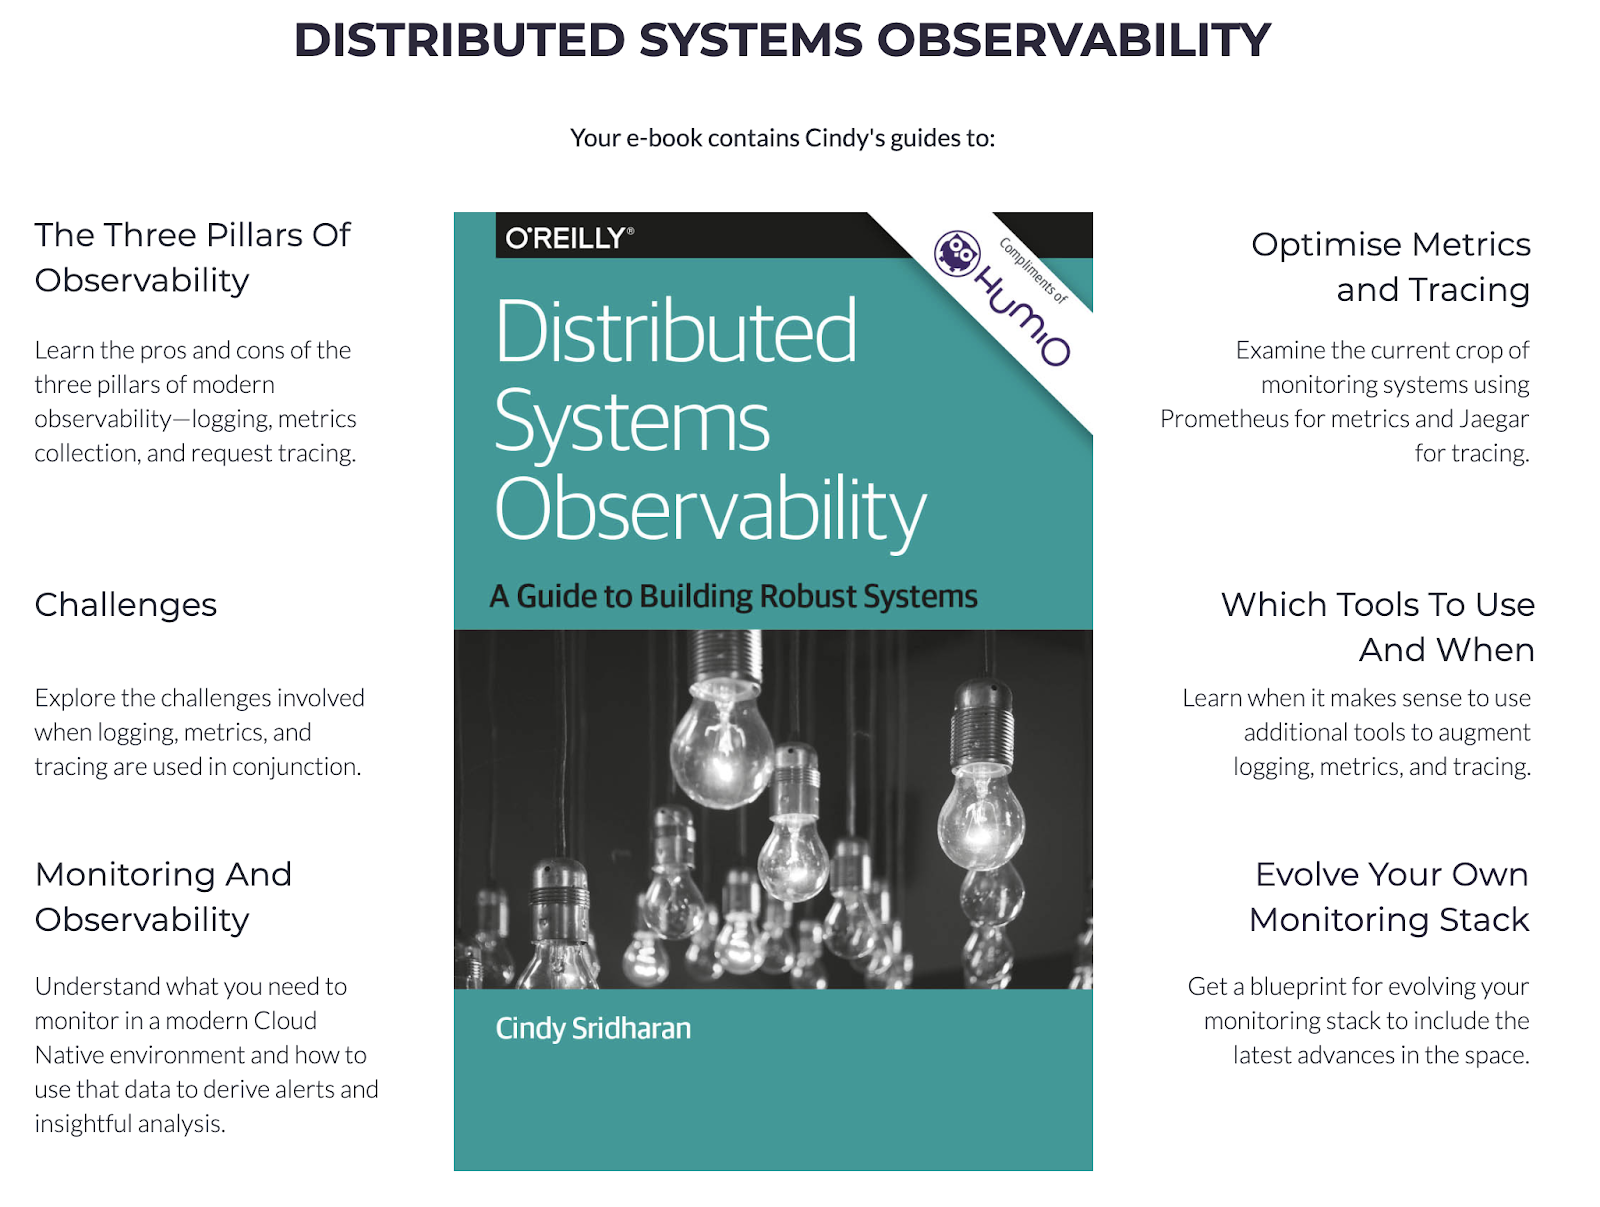 Distributed Systems Observability e-book by O'Reilly